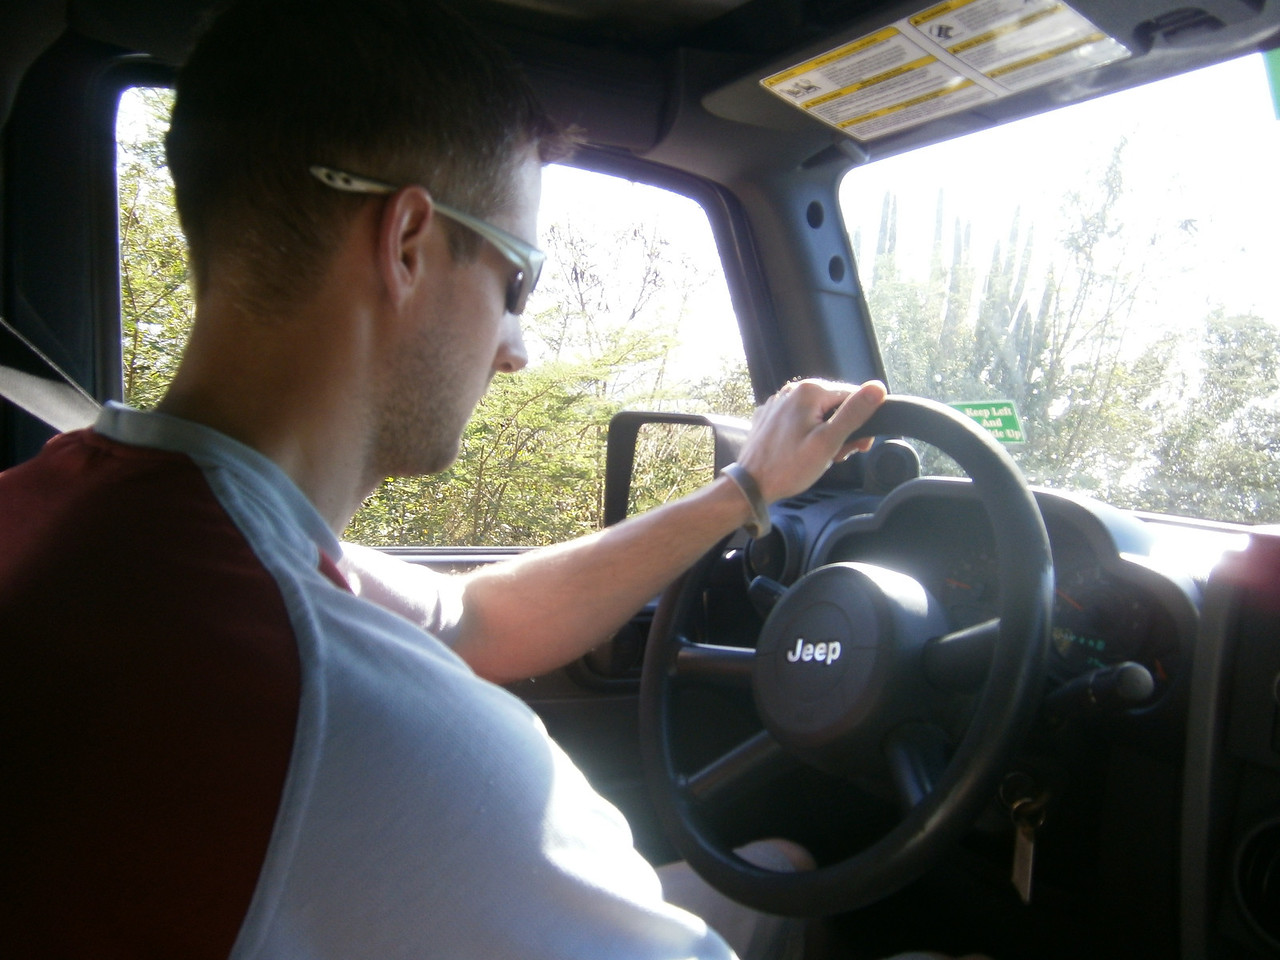 We certainly got our moneys worth out of this 4wd jeep rental. Just remember to drive on the left!